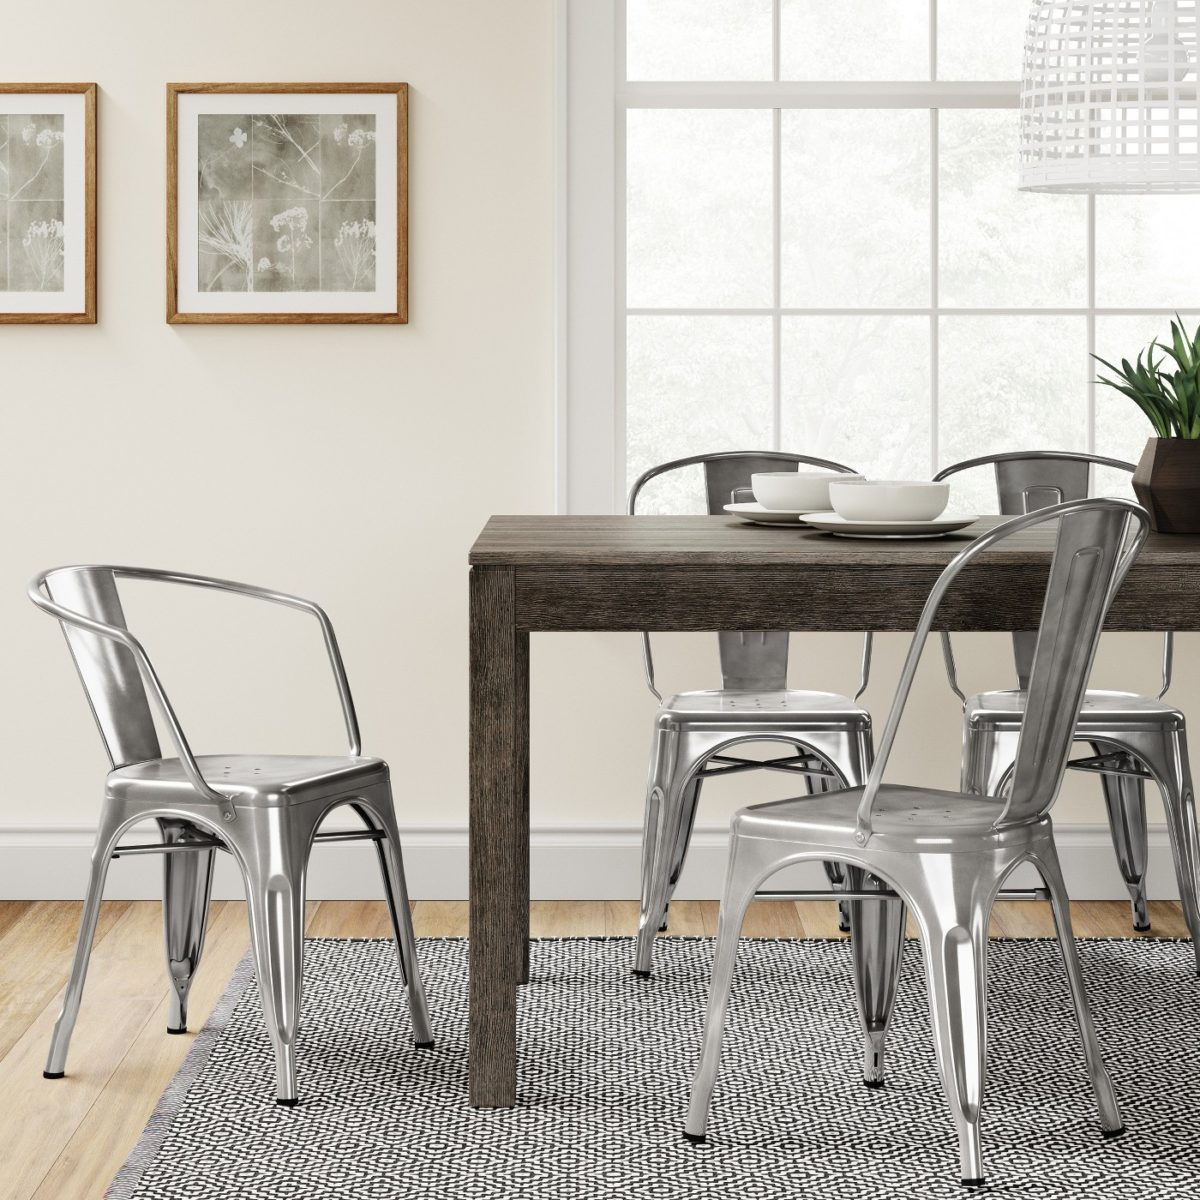 Target Furniture In Store: The Best Farmhouse Style Furniture At Target